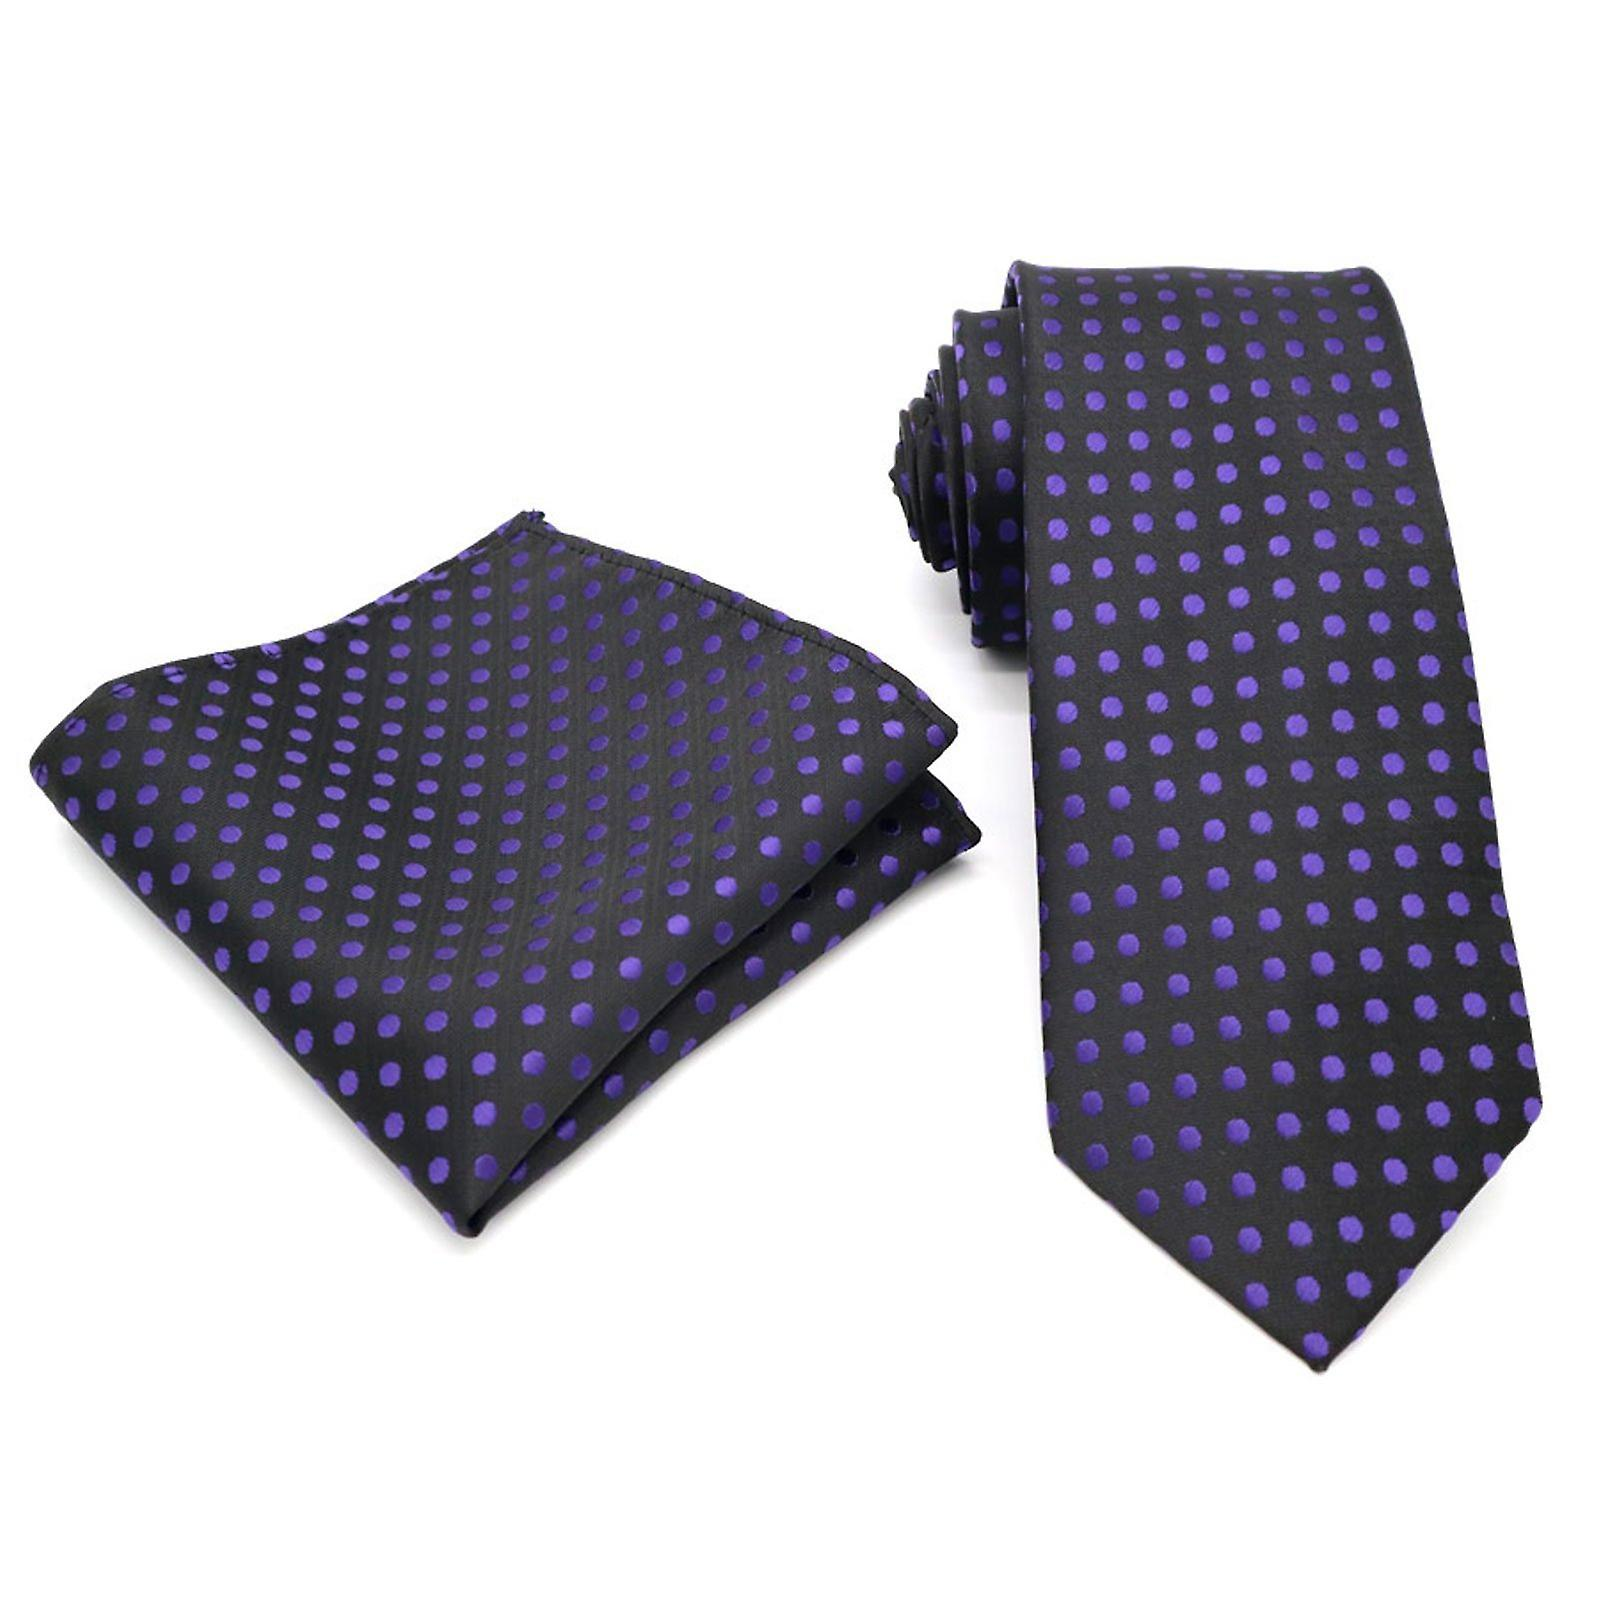 Purple & black polka dot design tie & pocket square set